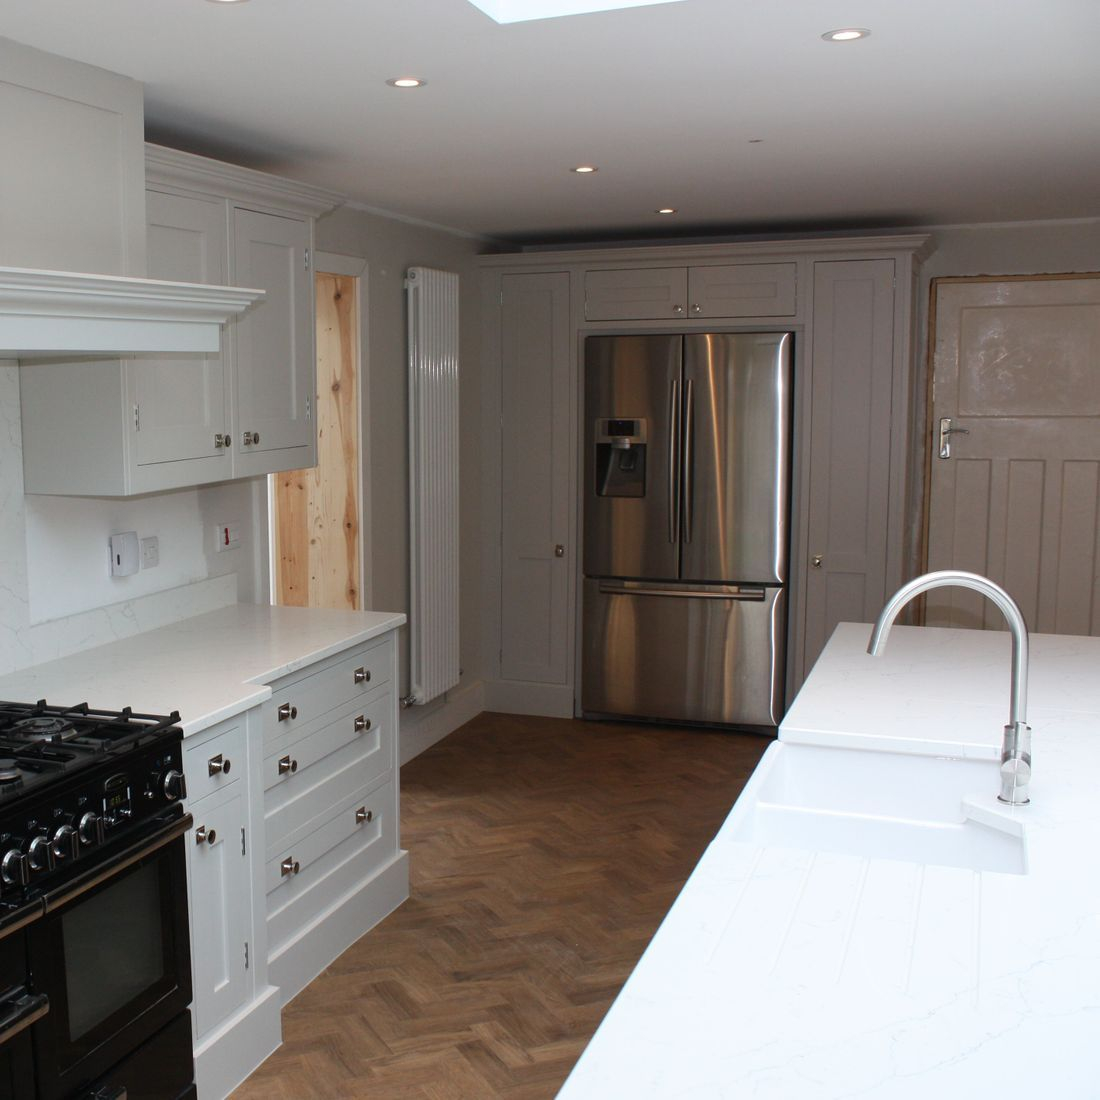 In-Frame Shaker Style Kitchen With American Fridge Freezer Housing